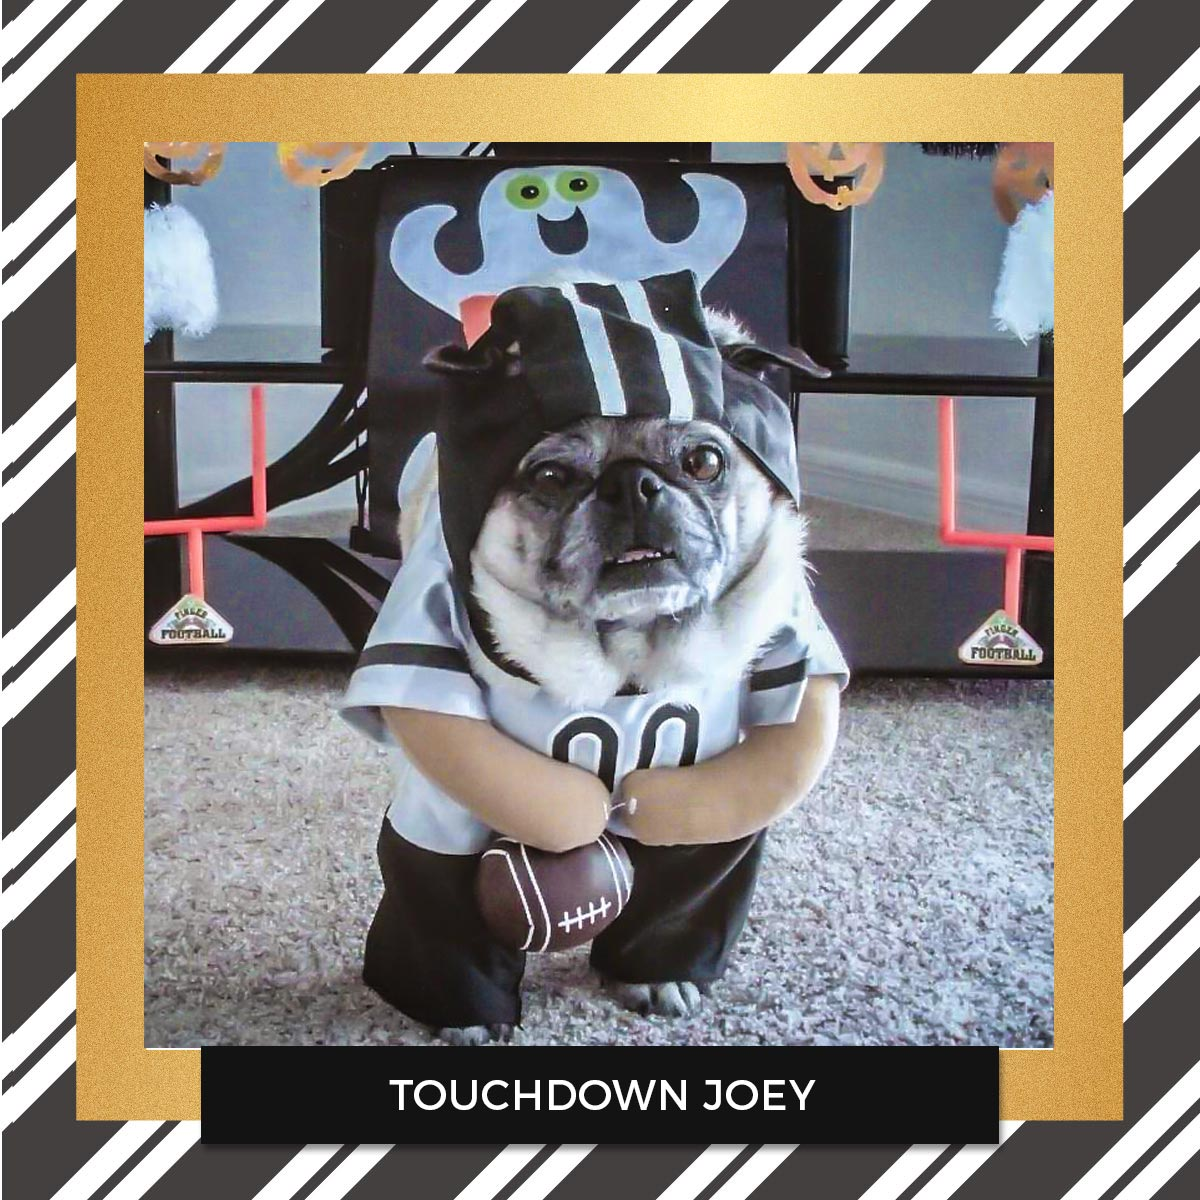 Touchdown Joey - Halloween Pet Costume Contest Entry